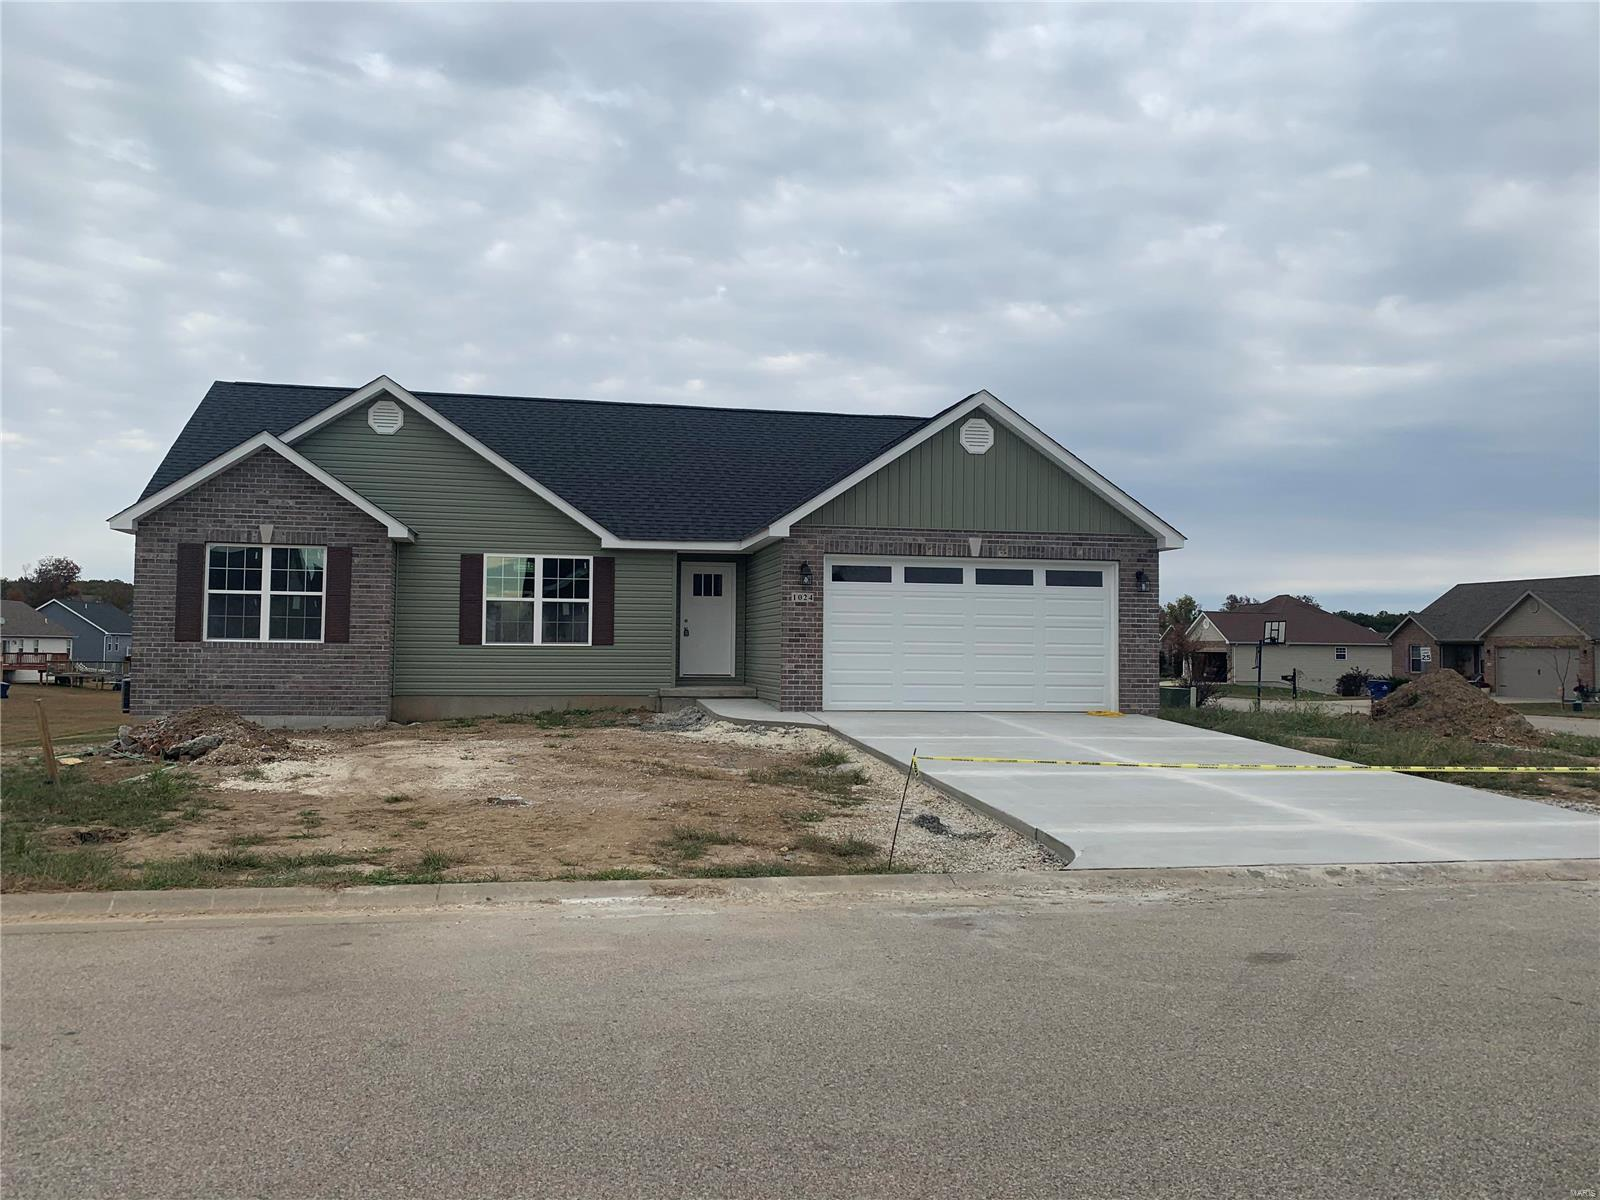 853 Diamond Head Property Photo - Union, MO real estate listing